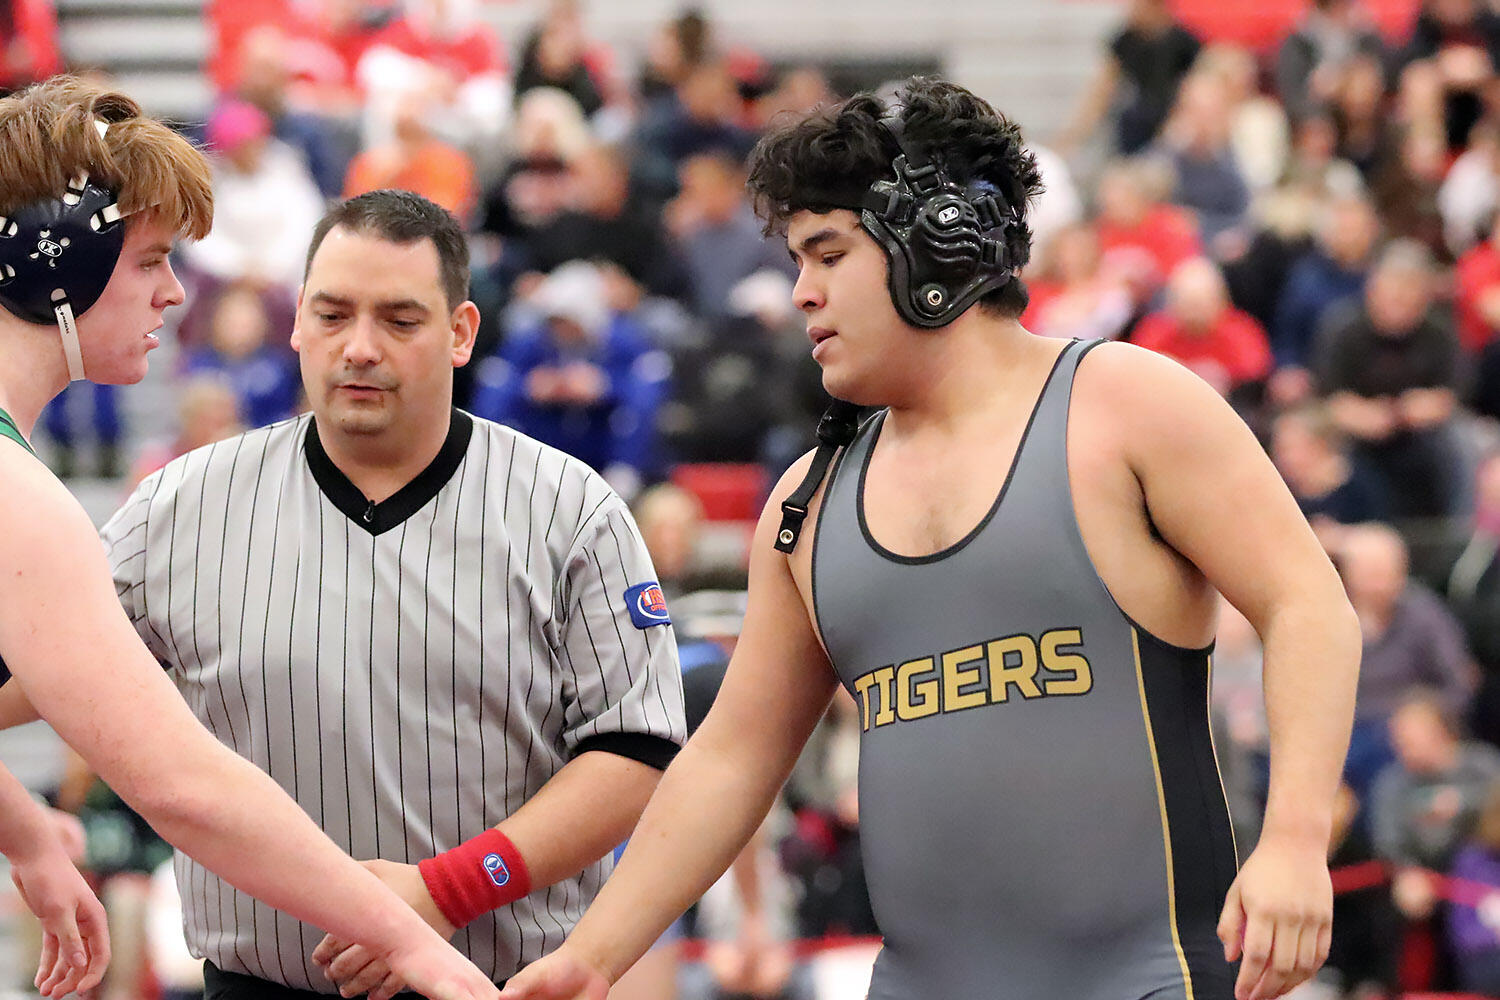 Julio Sandoval competes at IHSA wrestling sectionals.